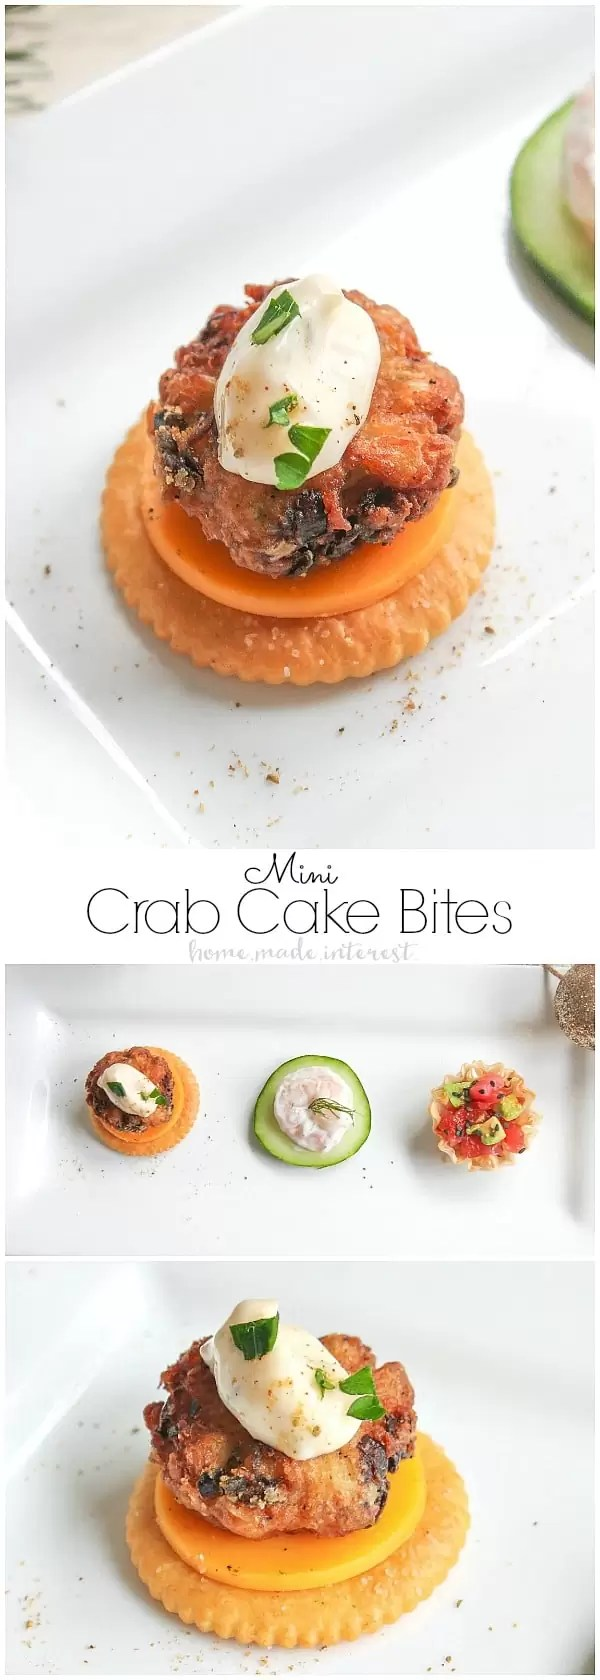 These Mini Crab Cake Bites are an easy appetizer recipe for Christmas or New Year's Eve. This elegant bite size appetizer is a mini crab cake served over cheddar cheese on a RITZ Crackers. Enjoy these crab cakes along with several other seafood appetizers for your New Year's Eve party.